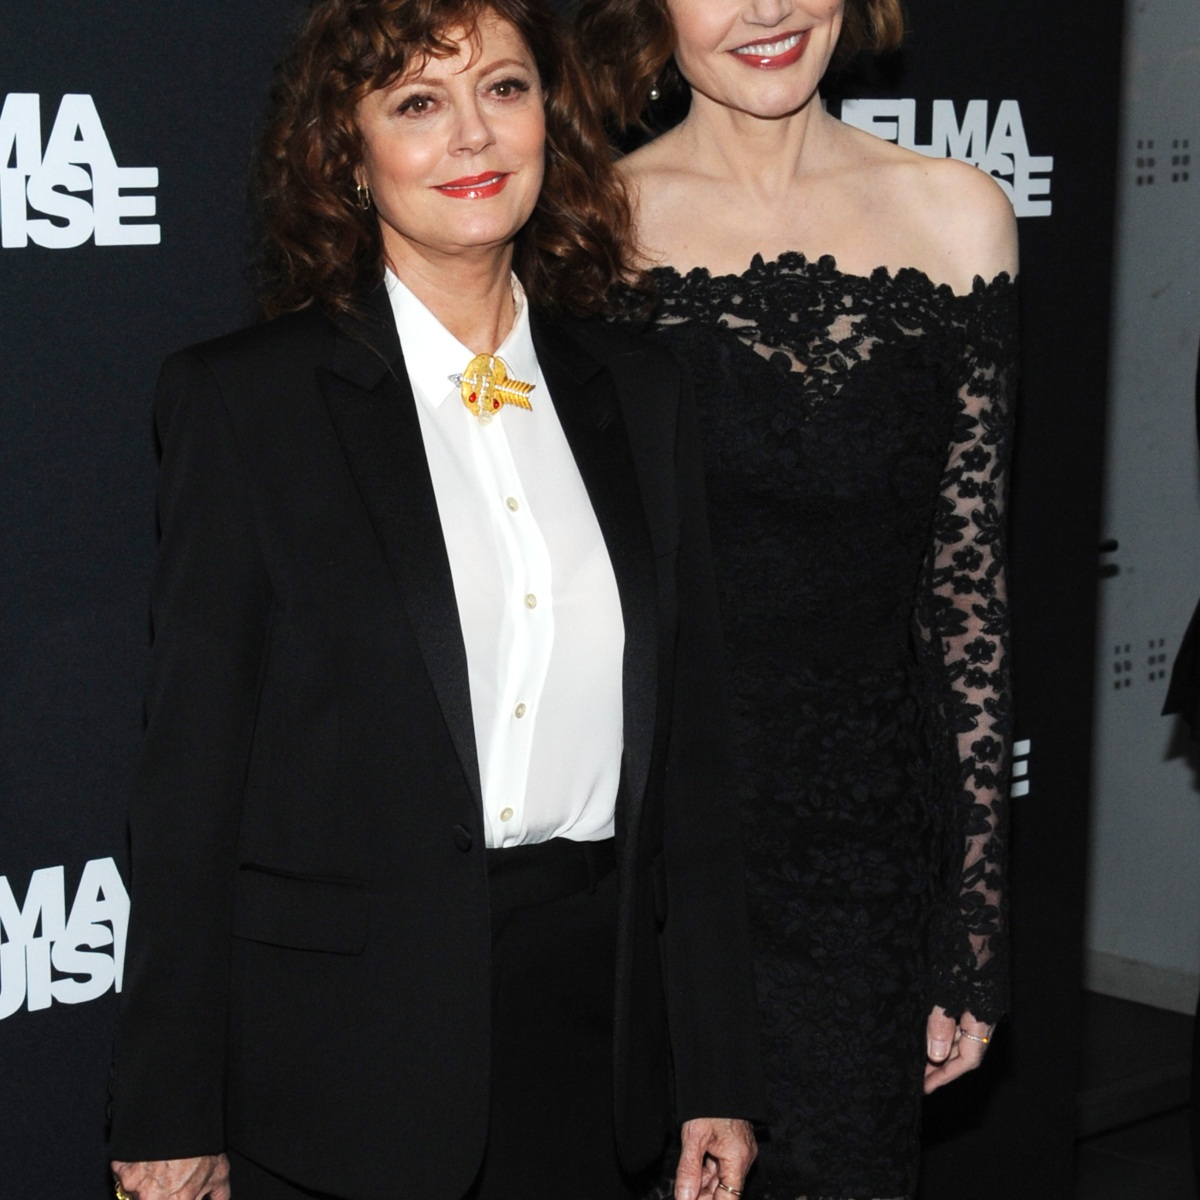 Susan Sarandon and Geena Davis Reunite Almost 3 Decades Since 'Thelma & Louise' Was Released